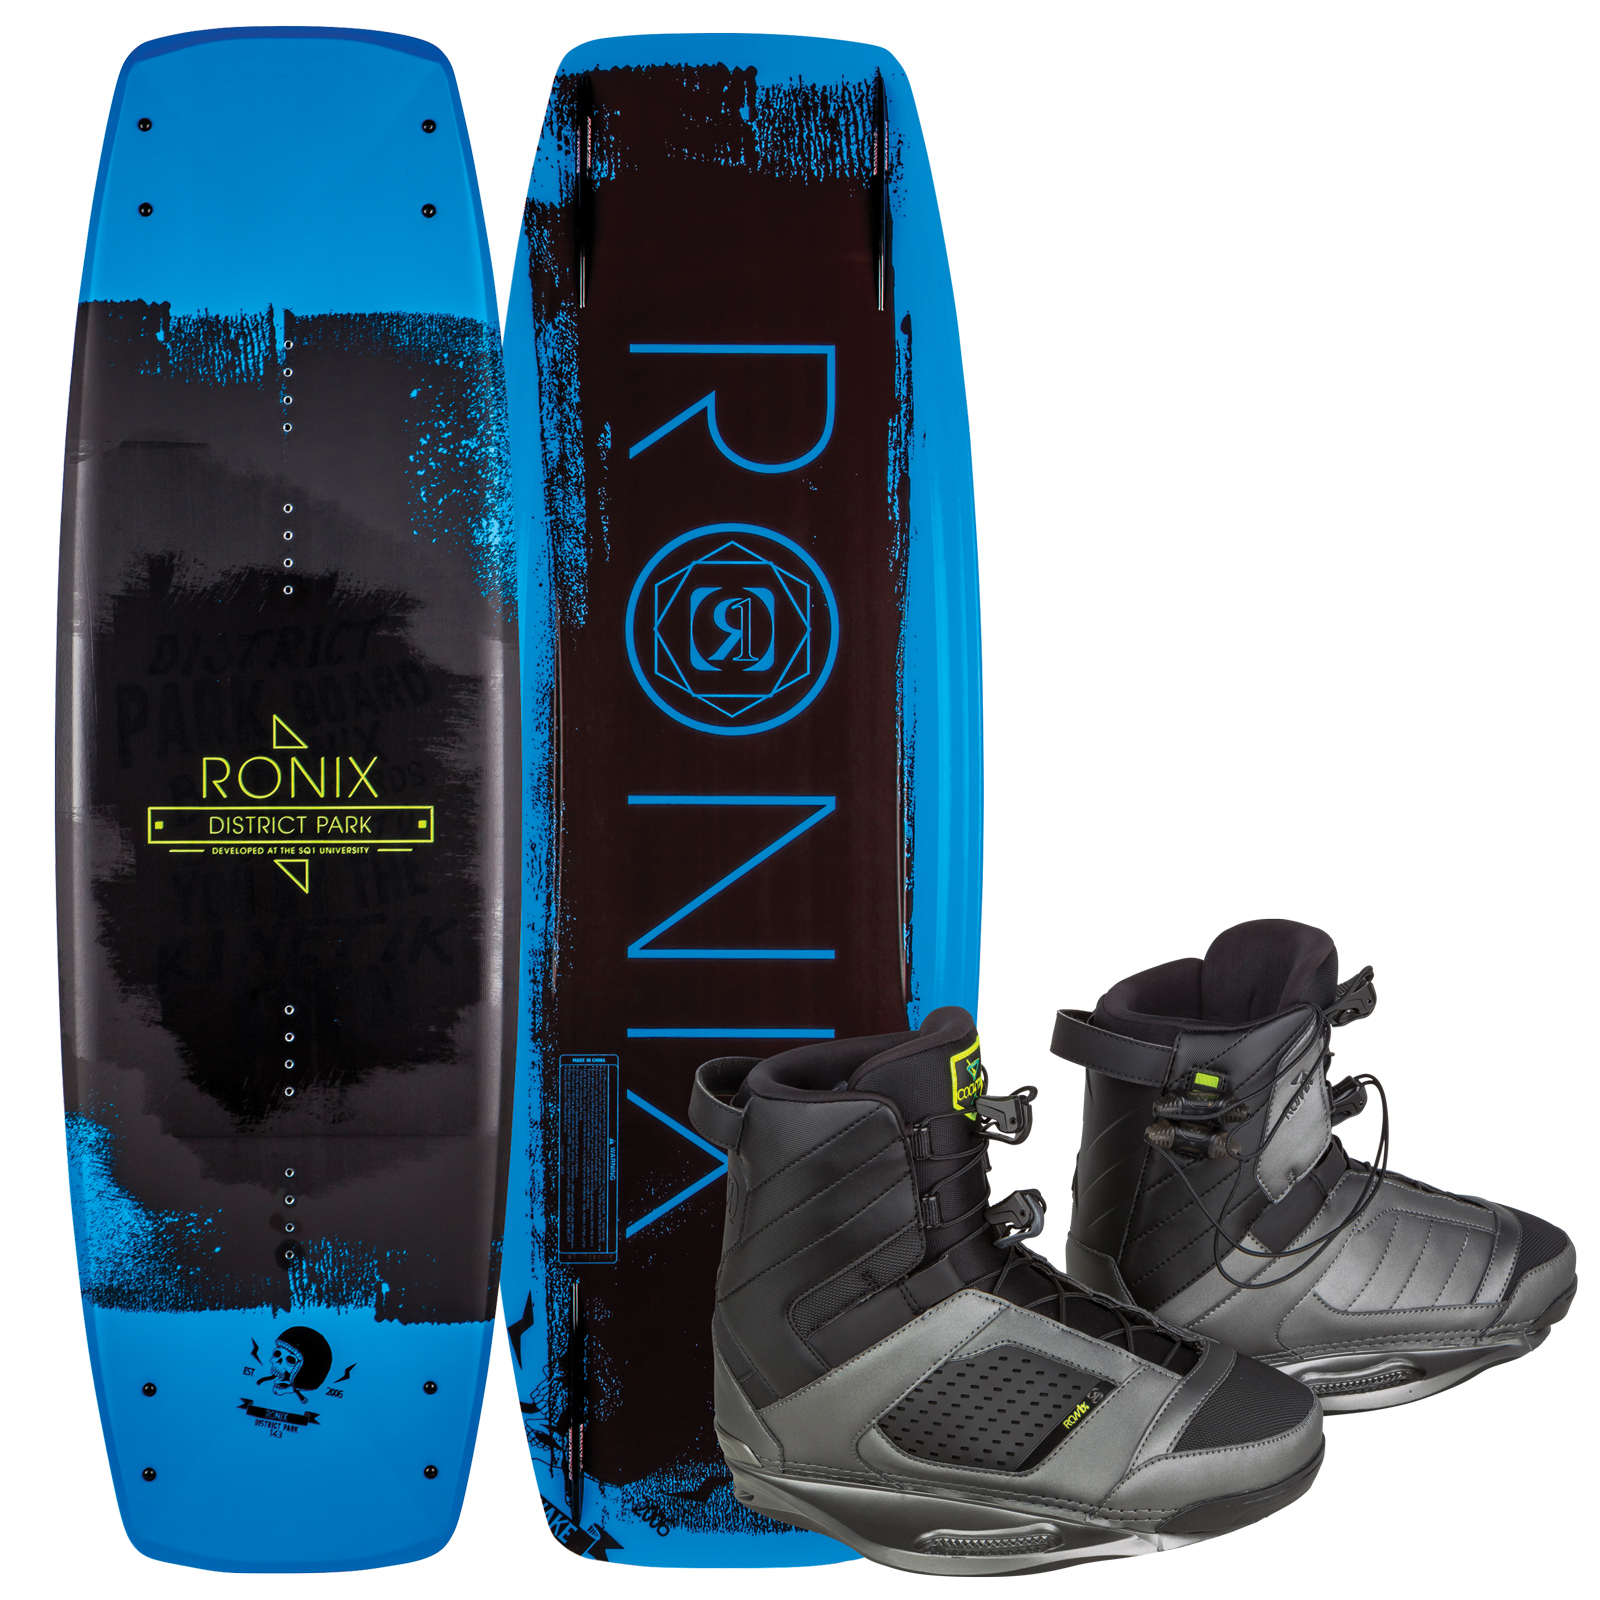 DISTRICT PARK 134 W/ COCKTAIL PACKAGE RONIX 2017